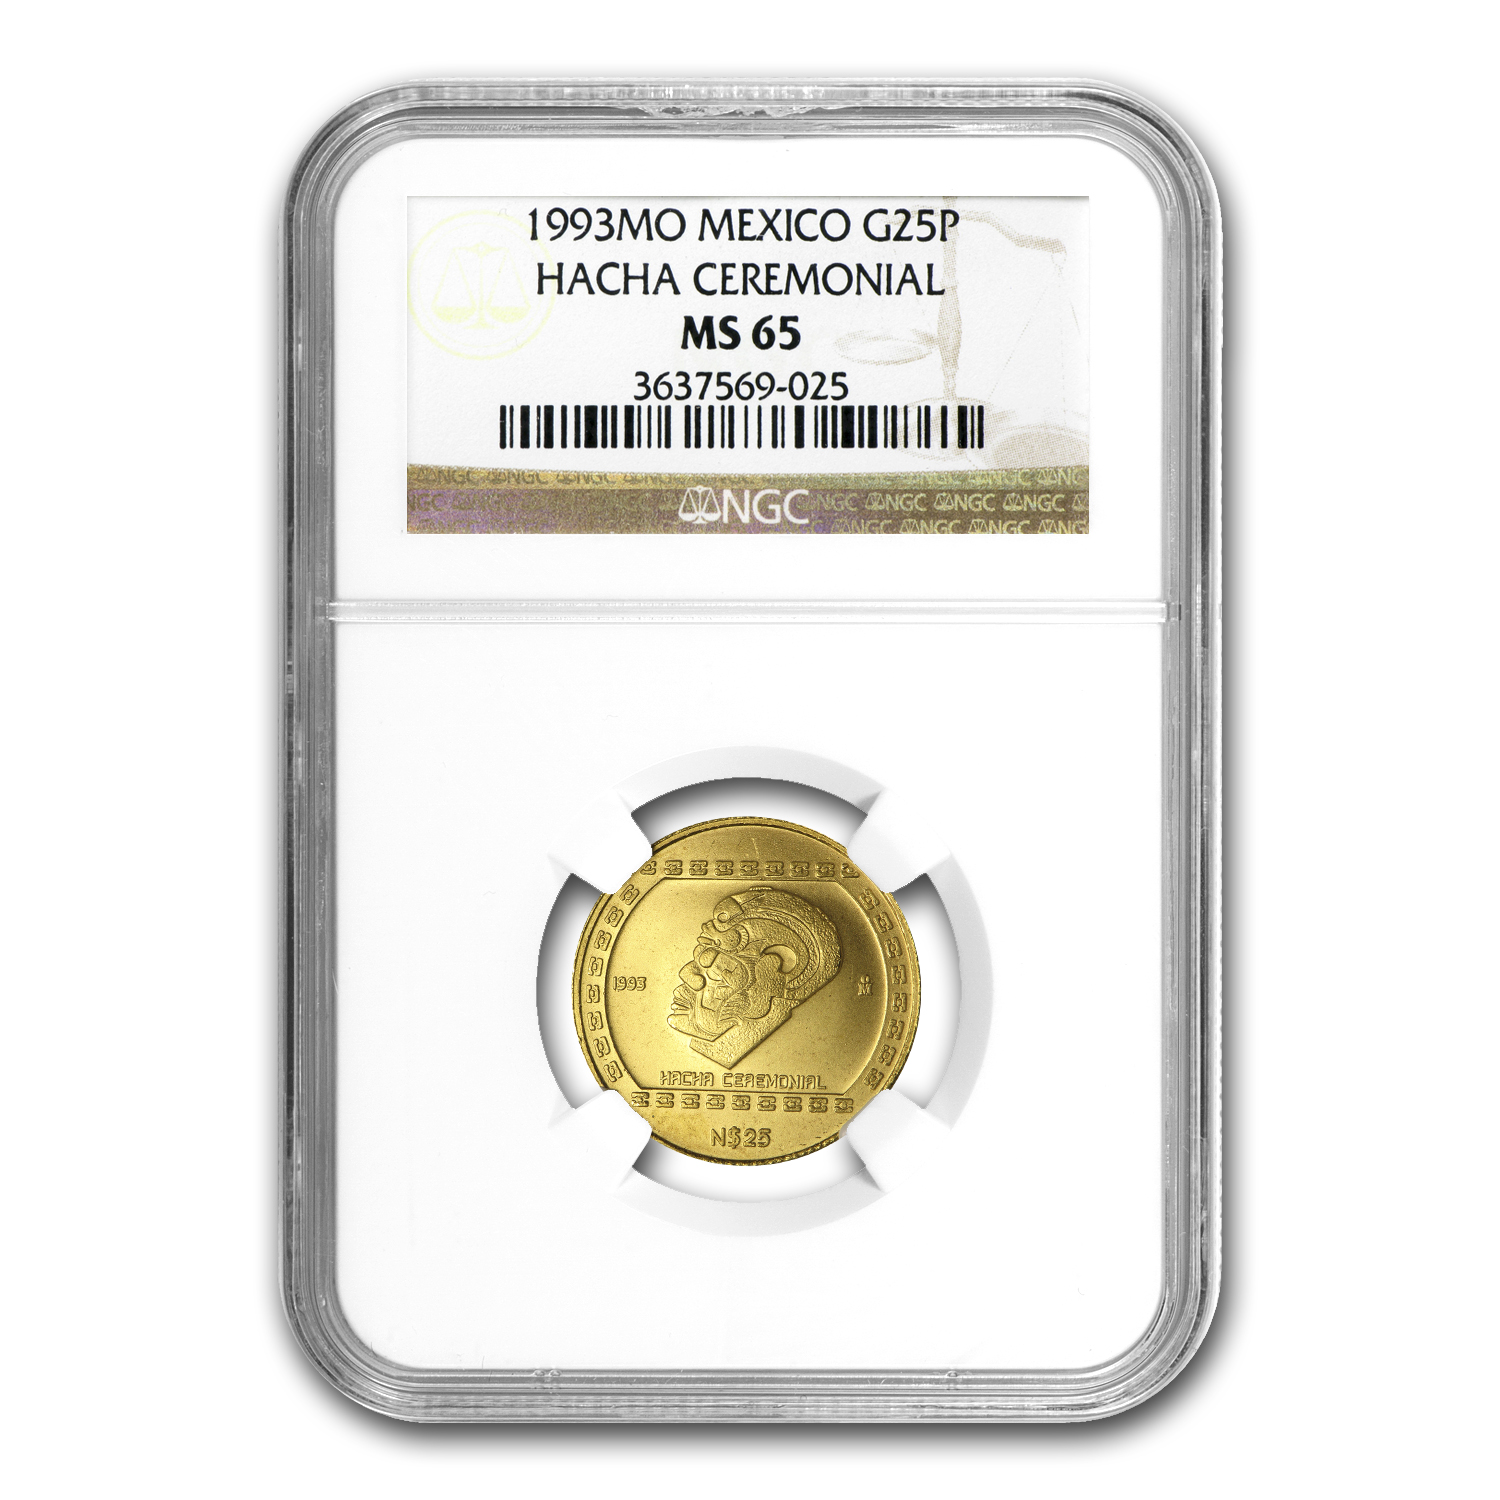 1993 Mexico Gold 25 Pesos Hacha Ceremonial MS-65 NGC